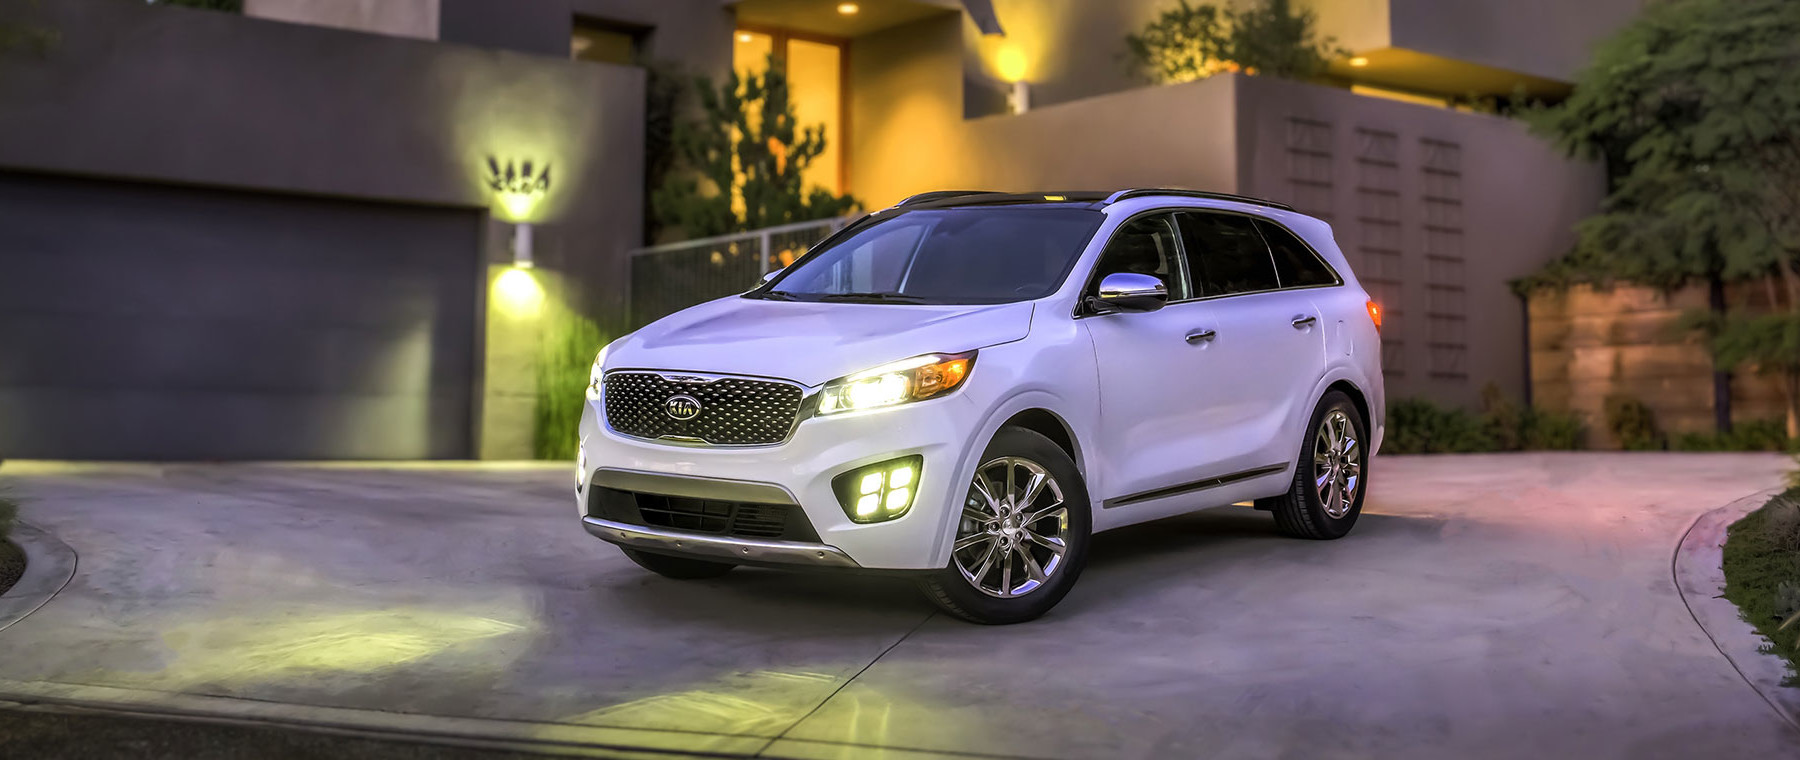 new kia sportage best lease offers prices near manchester nh. Black Bedroom Furniture Sets. Home Design Ideas